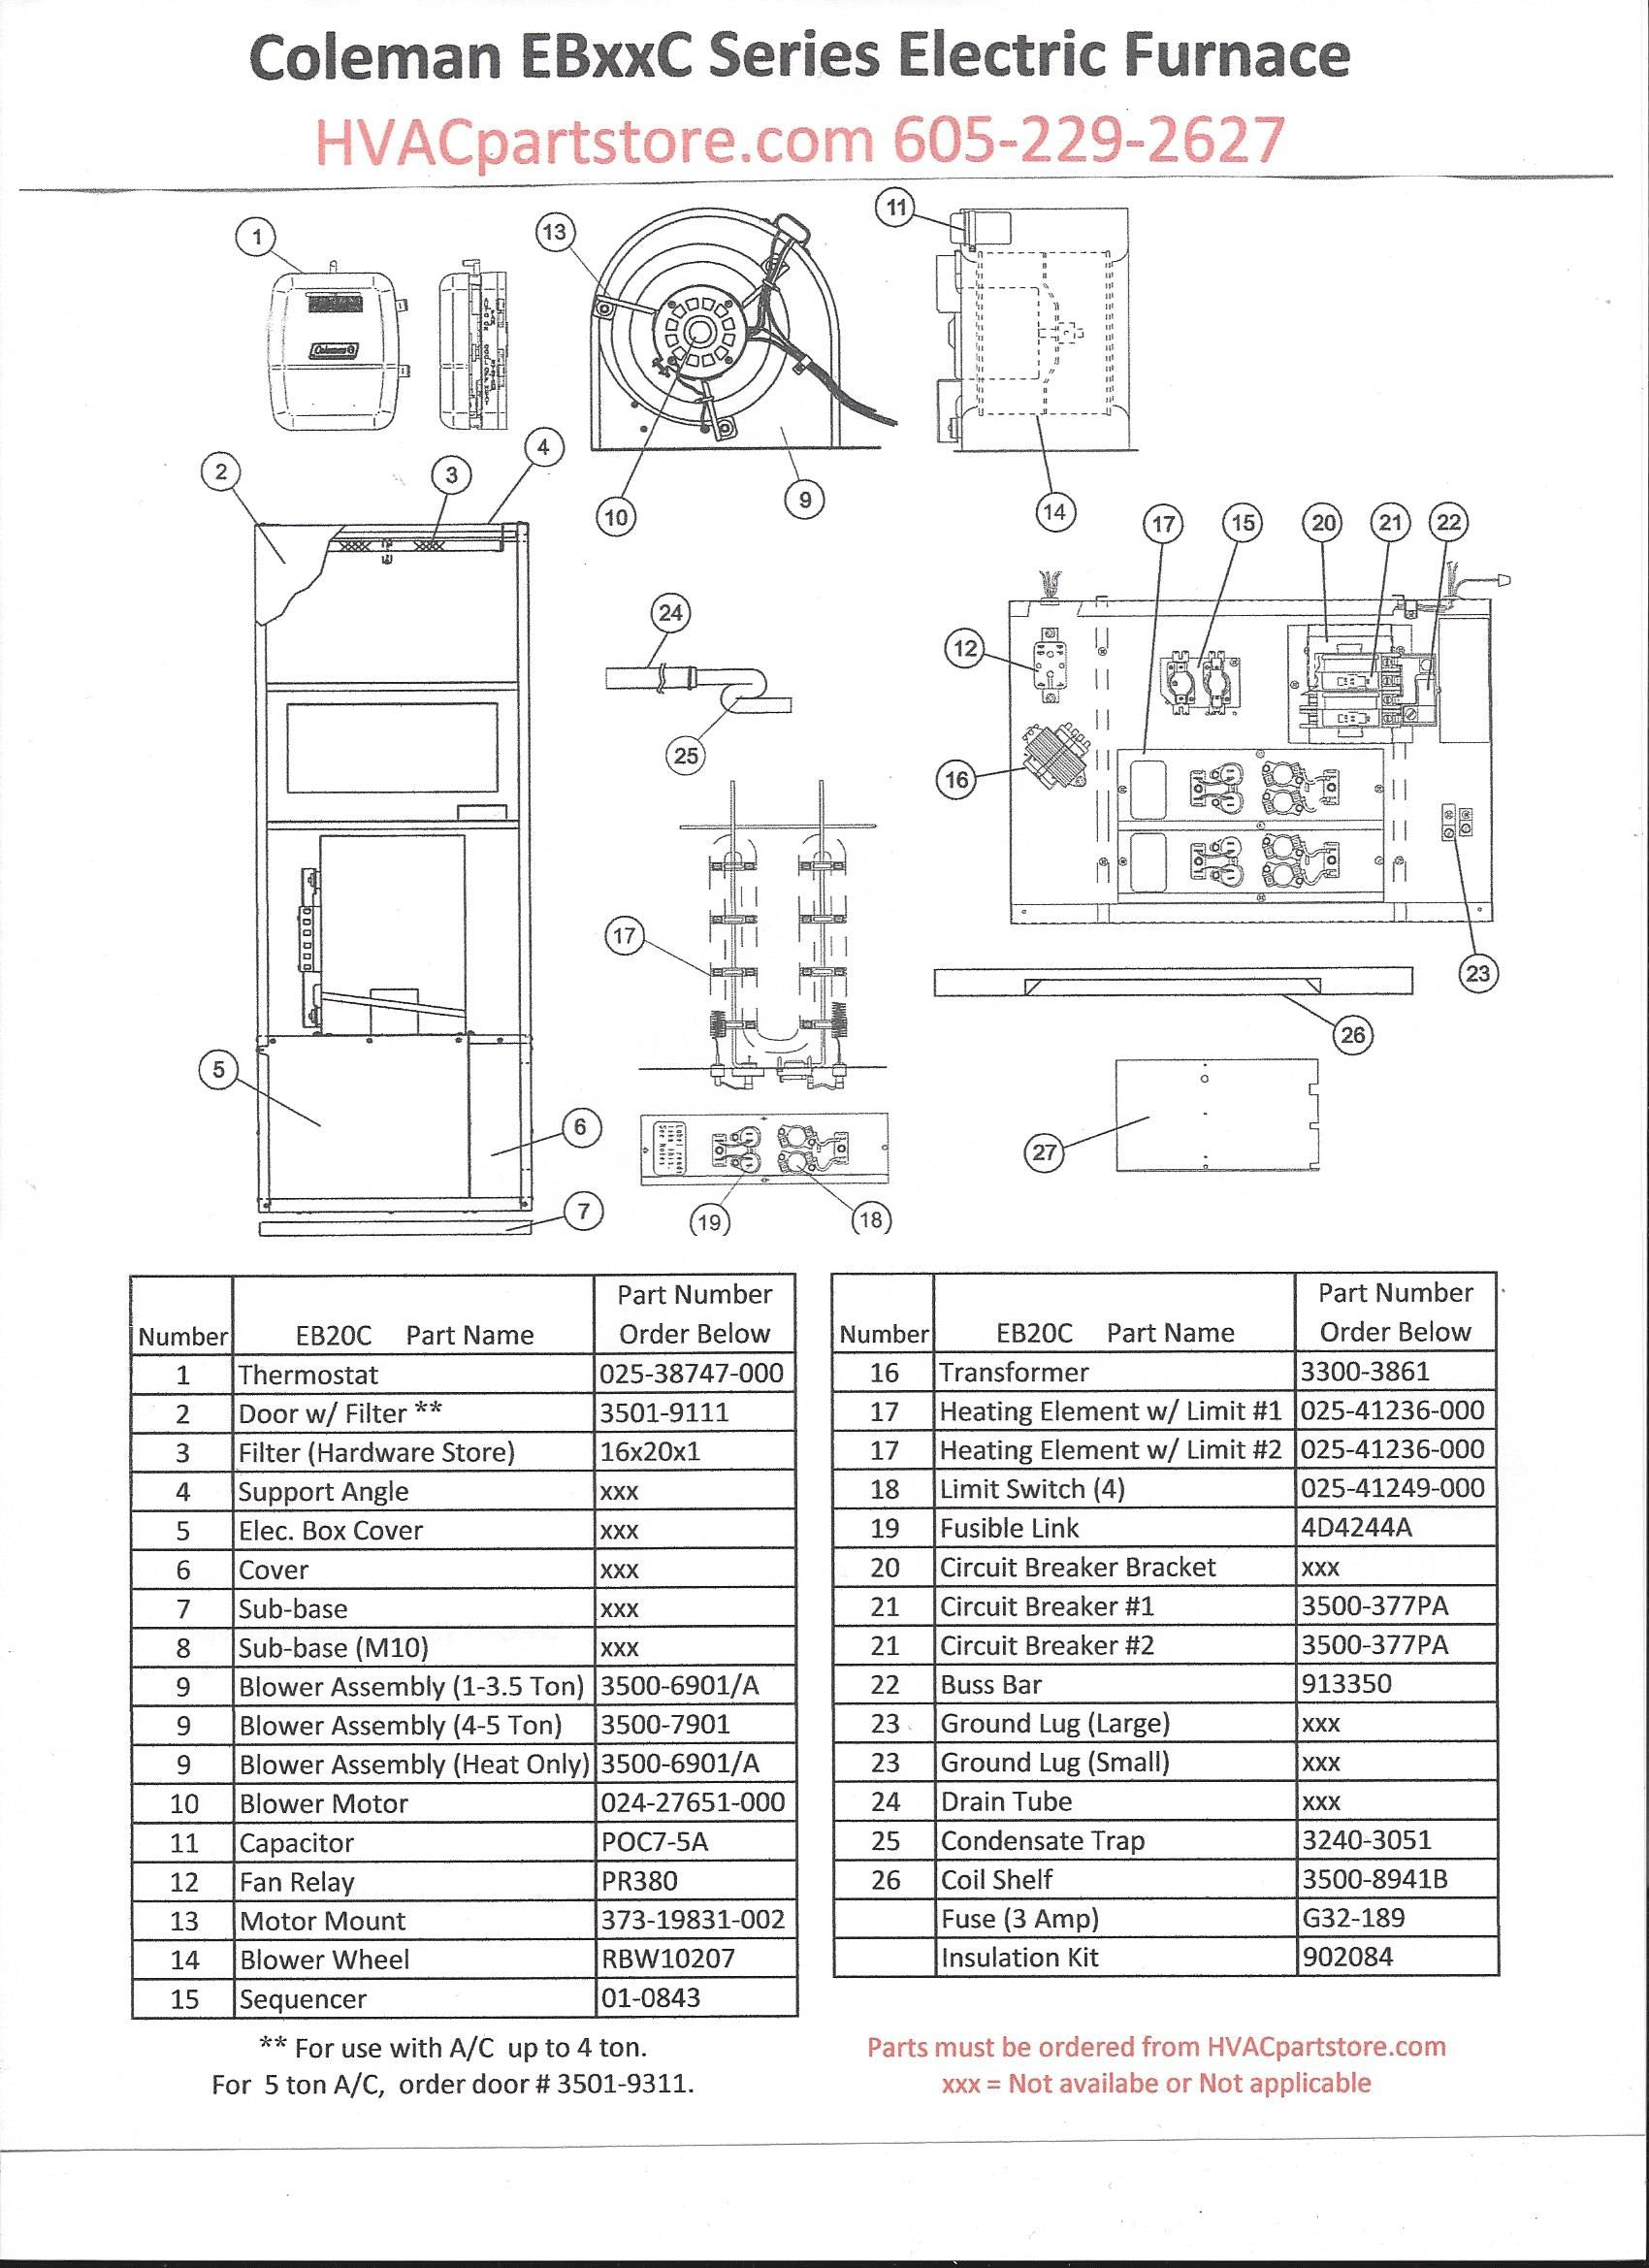 eb20c coleman electric furnace parts hvacpartstore coleman electric furnace diagram coleman electric furnace diagram #2